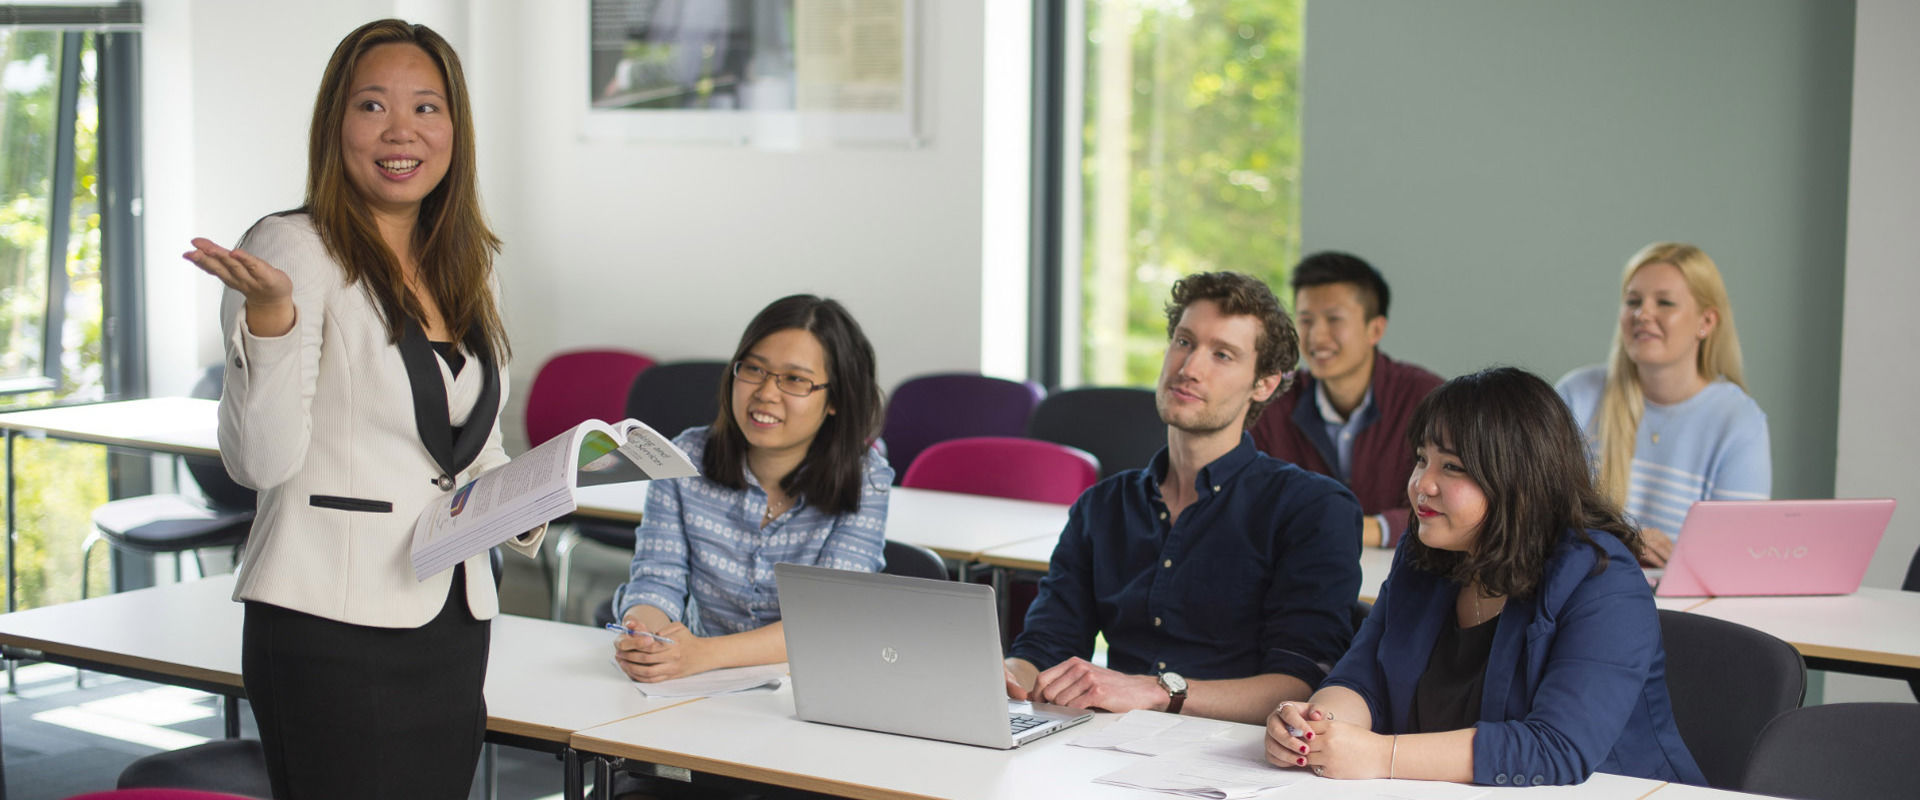 Why get an MBA in Europe? Here are the top 10 reasons: | Study.eu